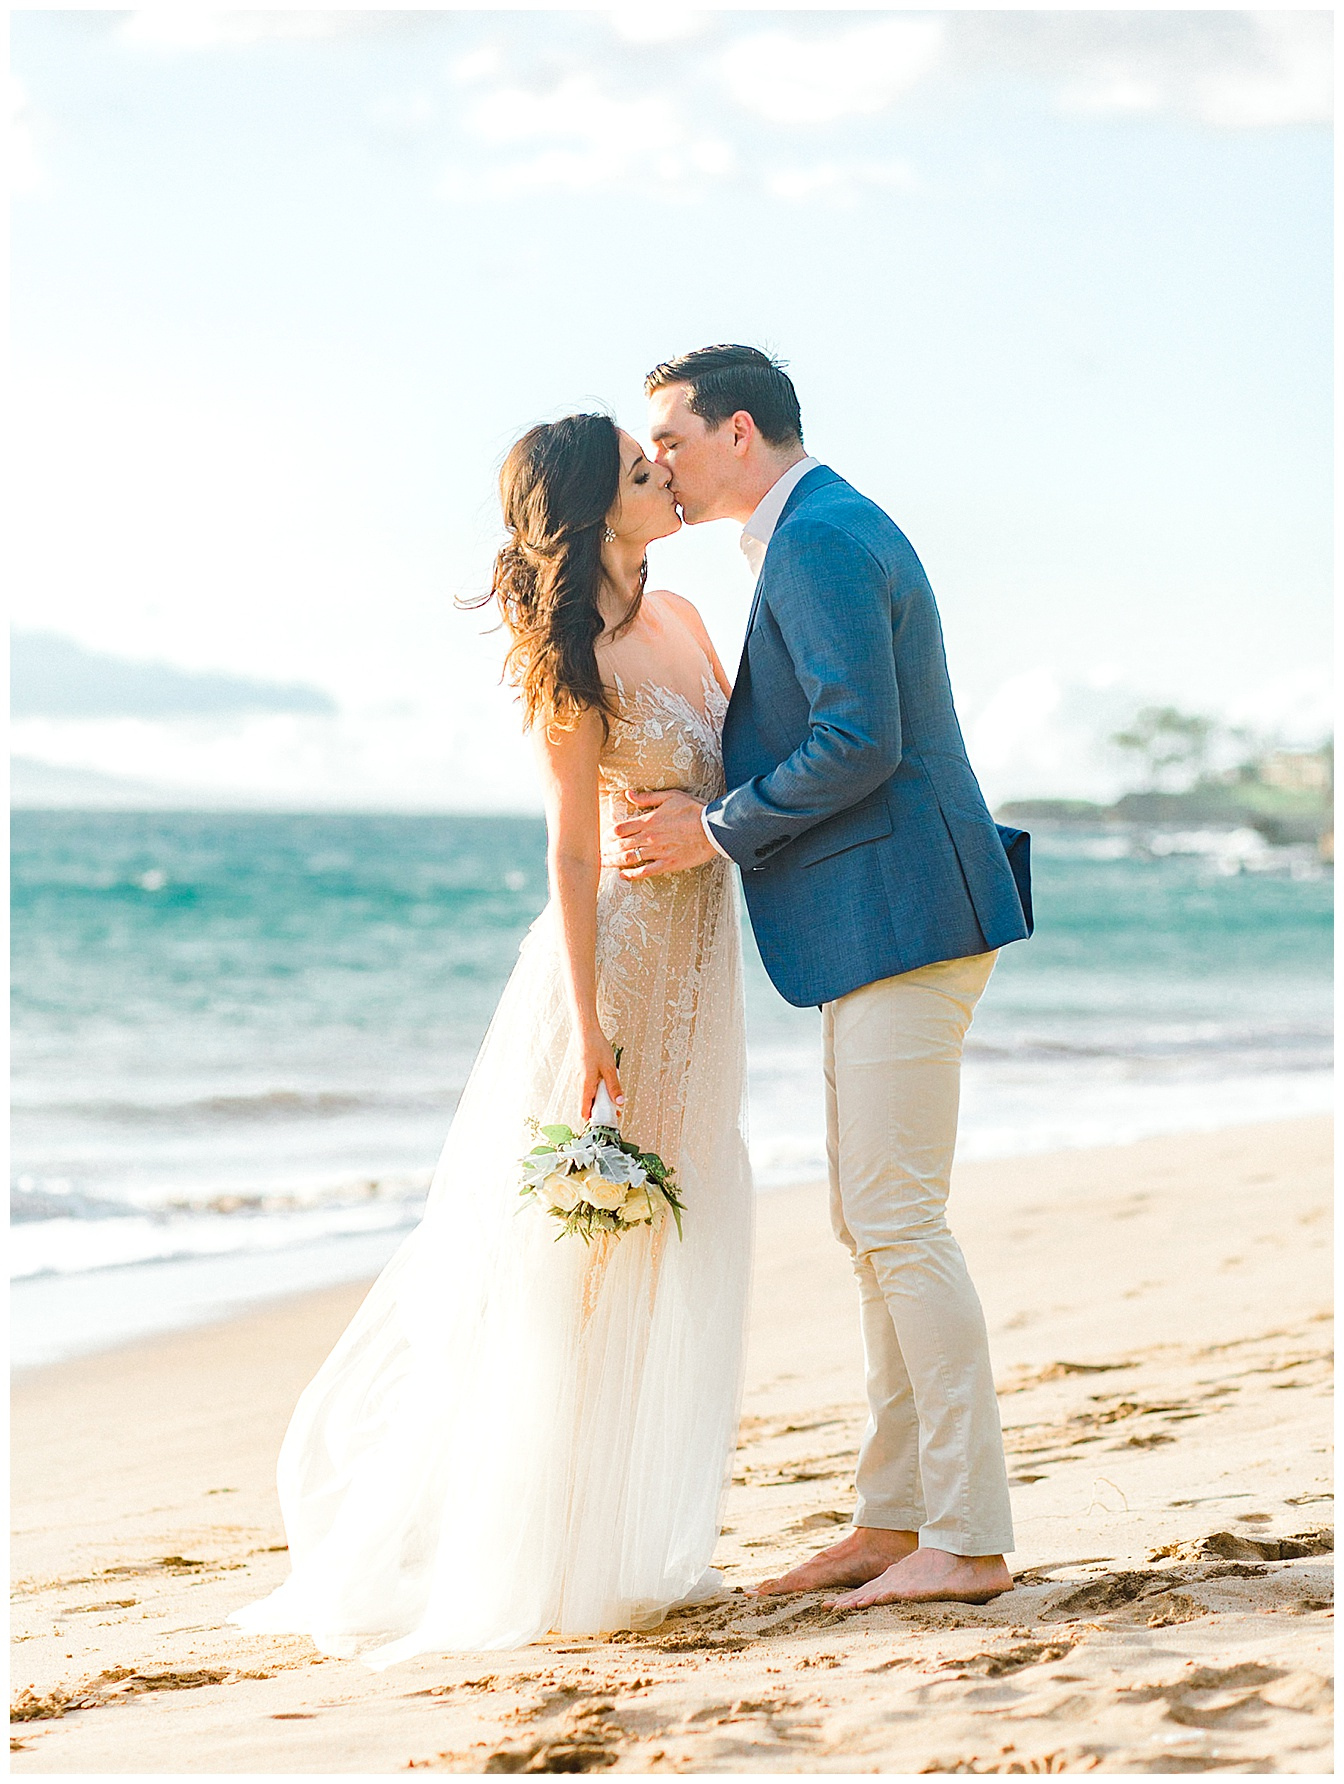 Makena-Cove-Maui-Elopement_0048.jpg